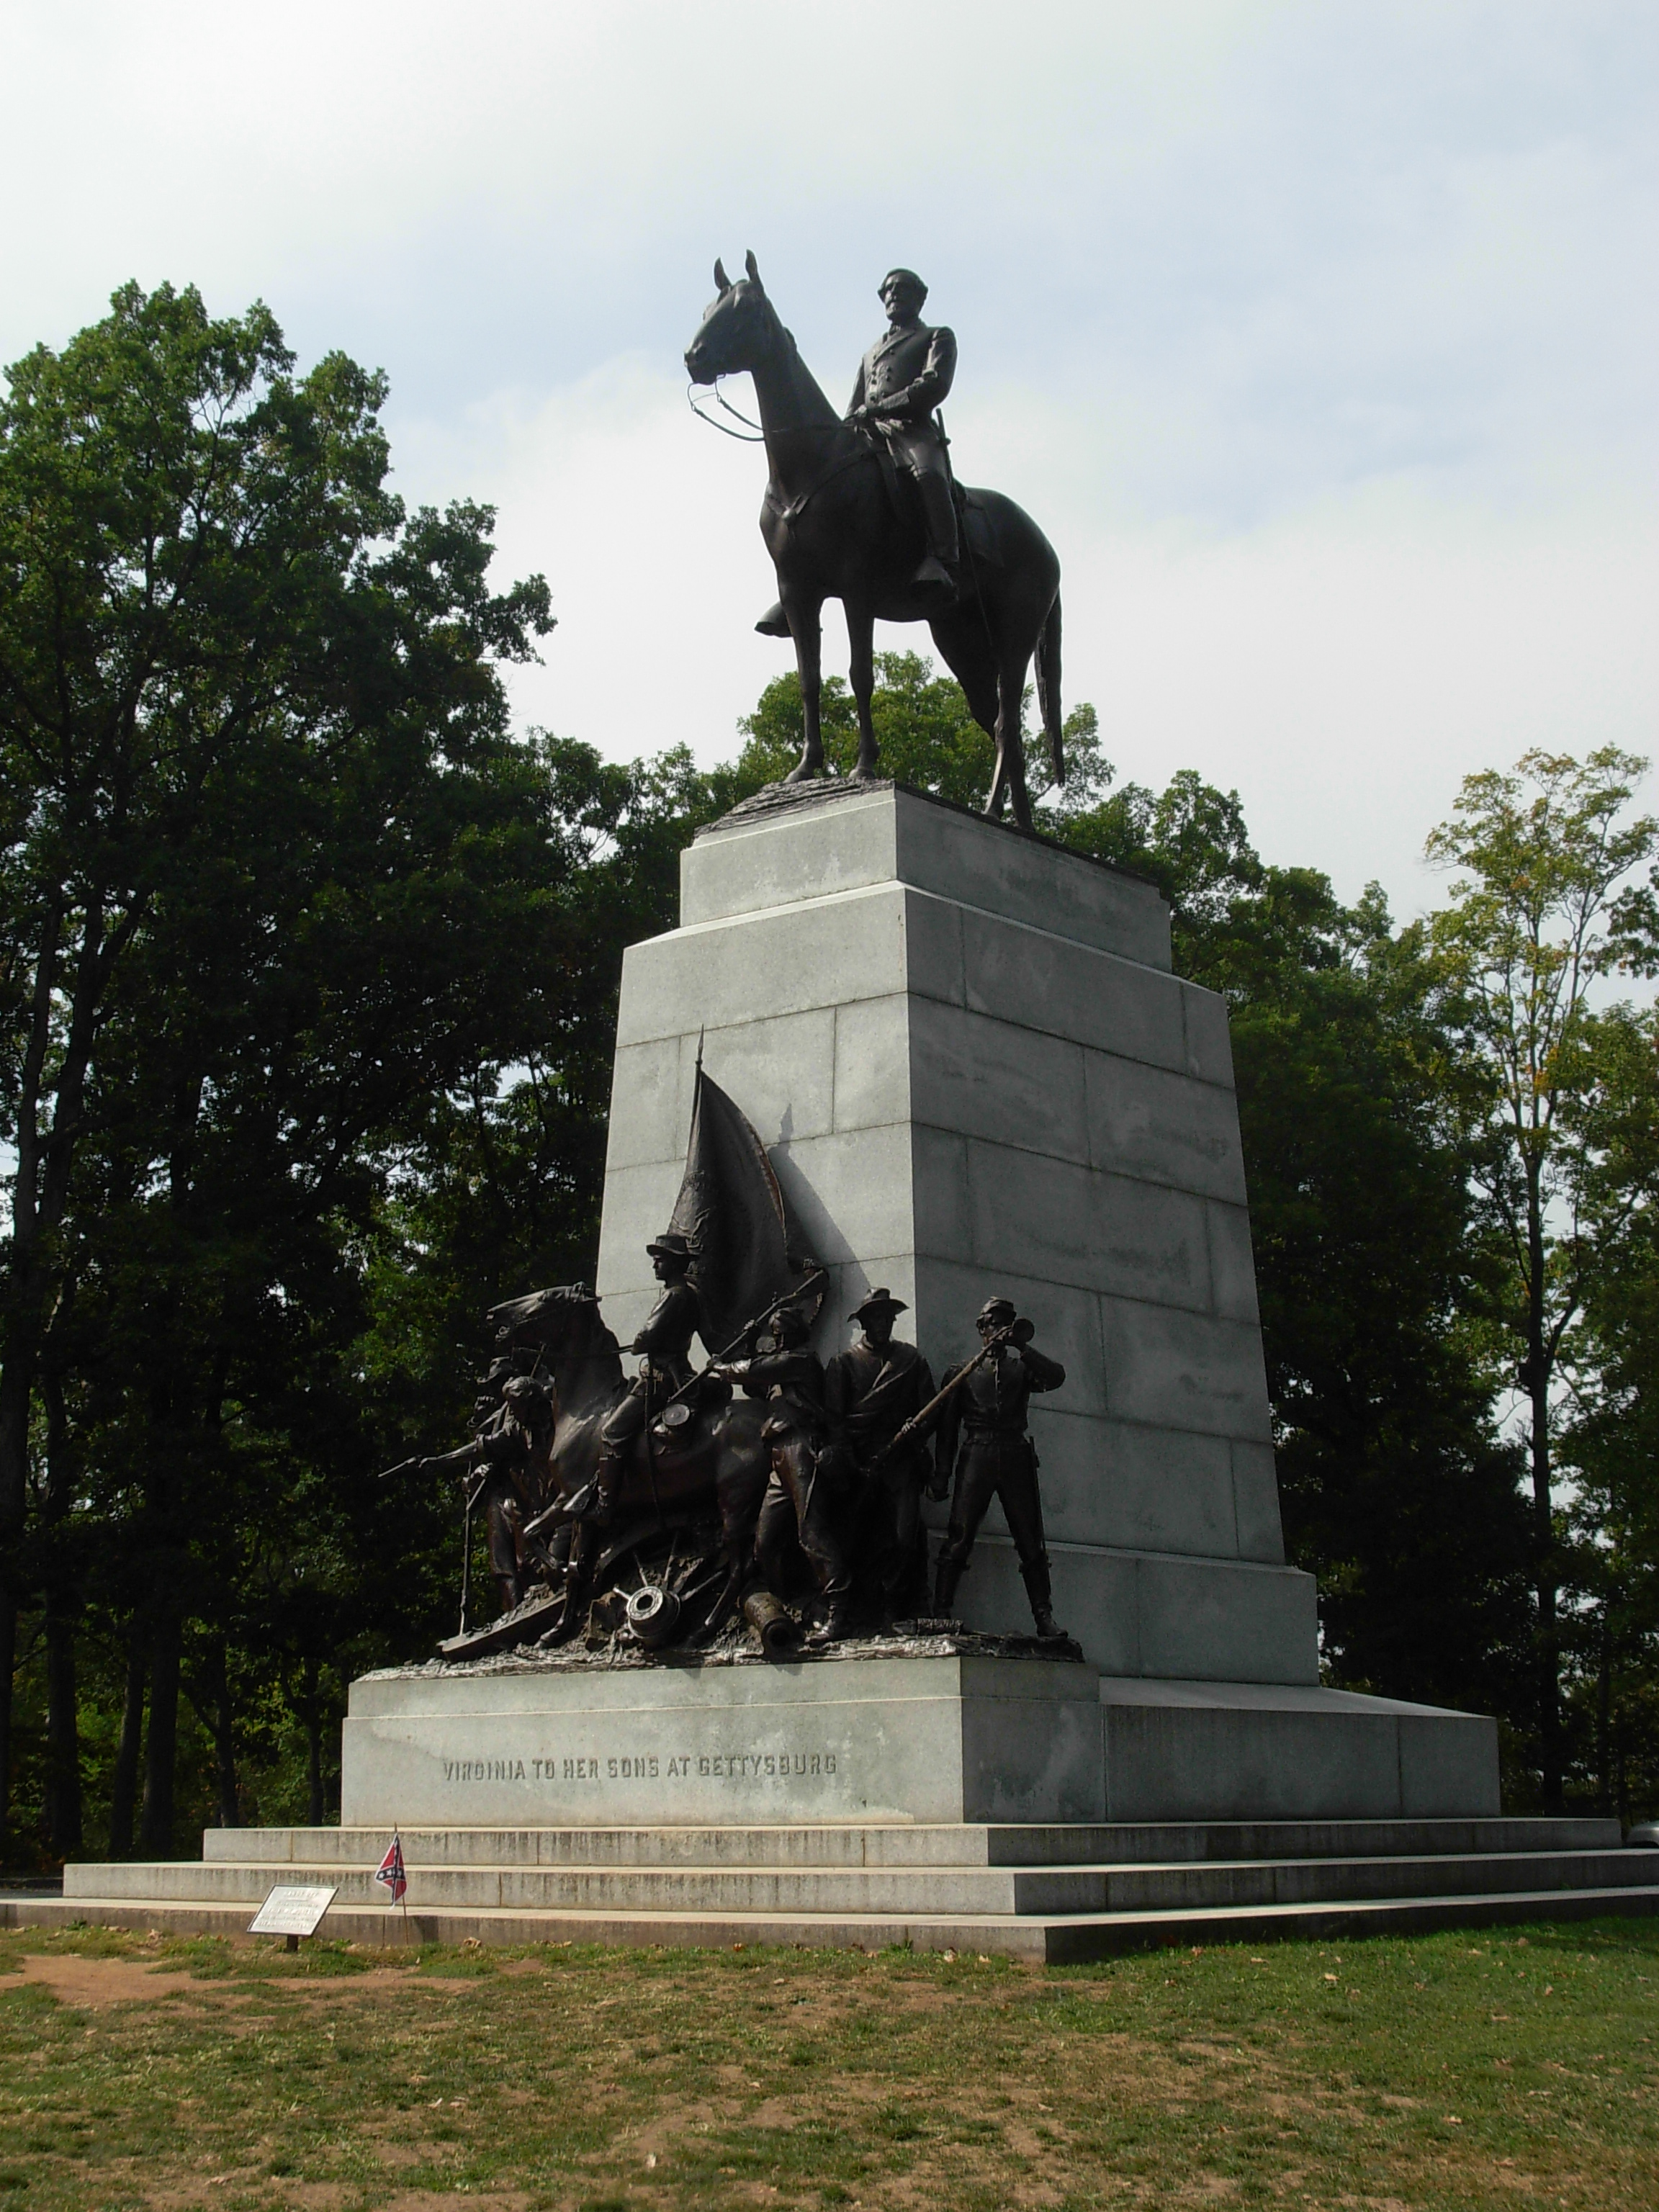 Superb img of Gettysburg Monuments and Military on Pinterest with #5C512B color and 2304x3072 pixels